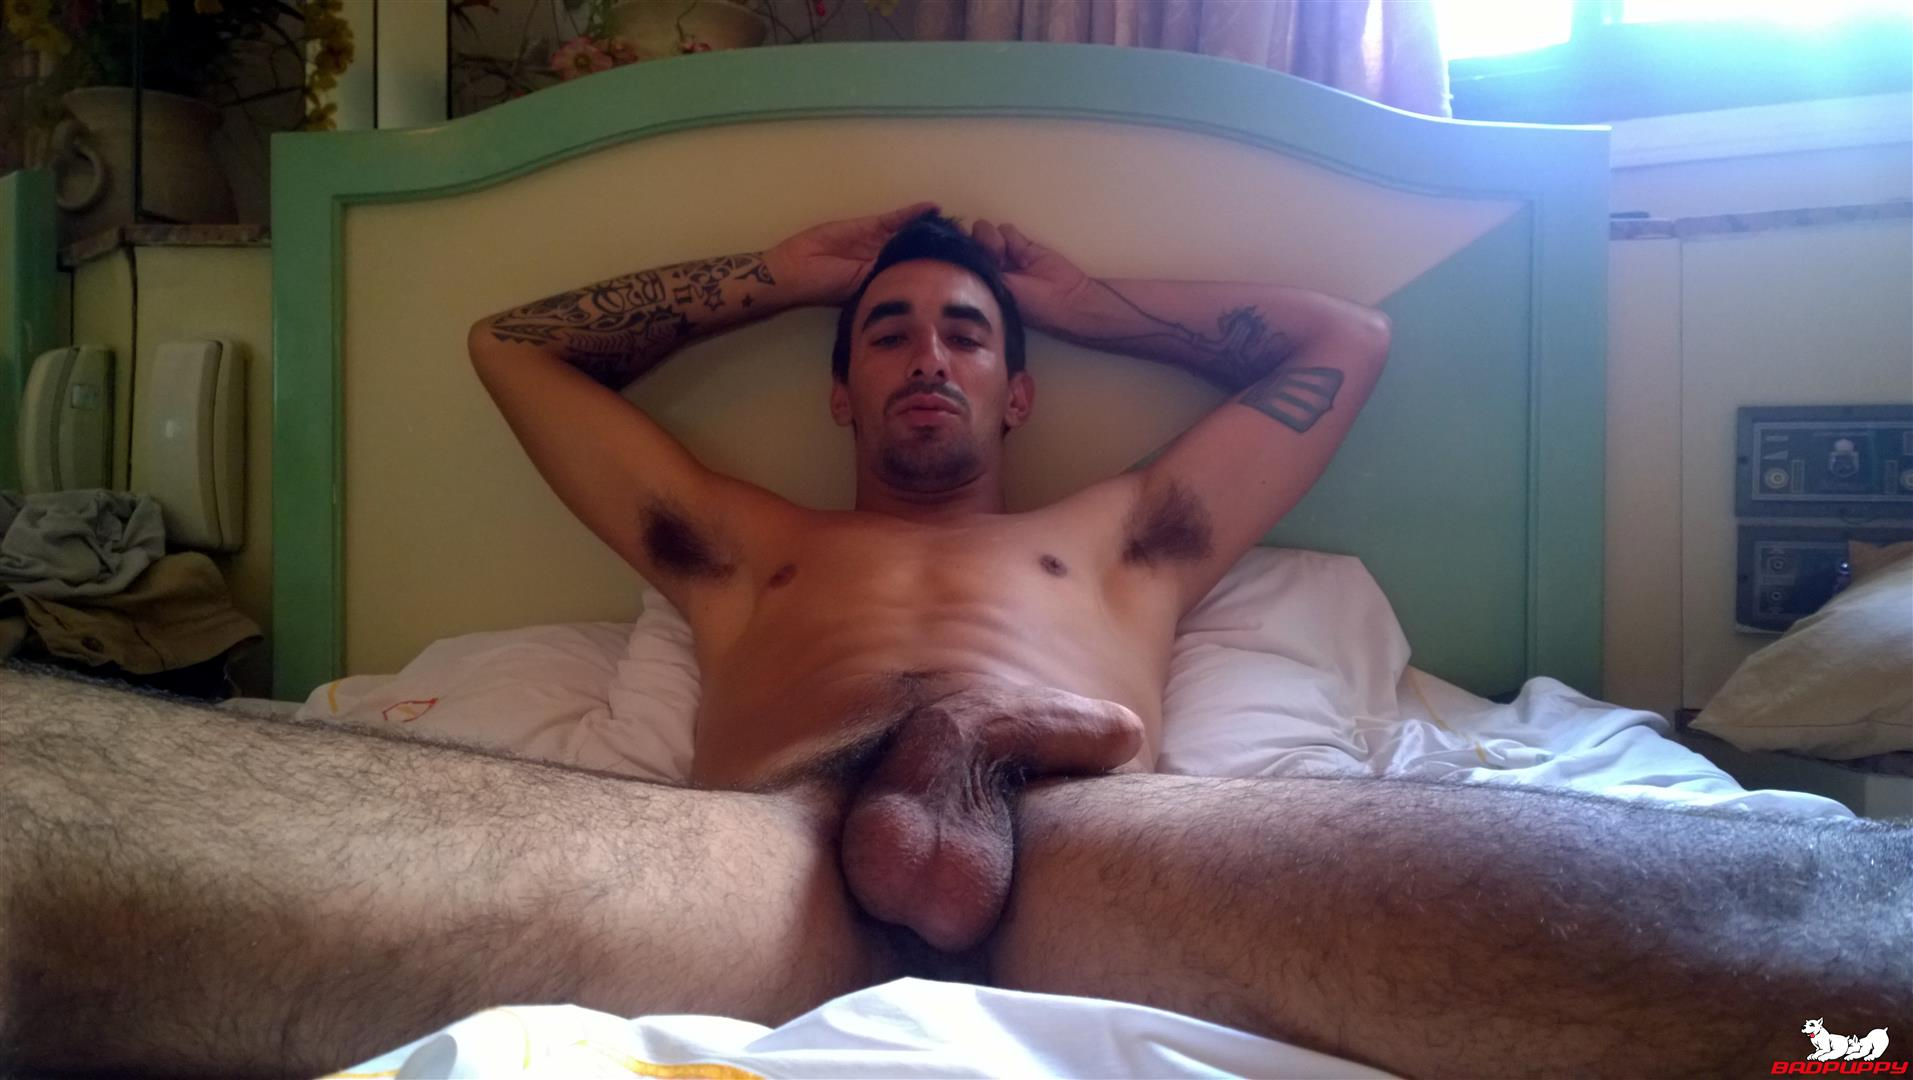 Badpuppy-Fabian-Flores-Argentinian-with-a-Big-Uncut-Cock-04 Argentinian Hunk With A Big Uncut Cock Auditions For Gay Porn